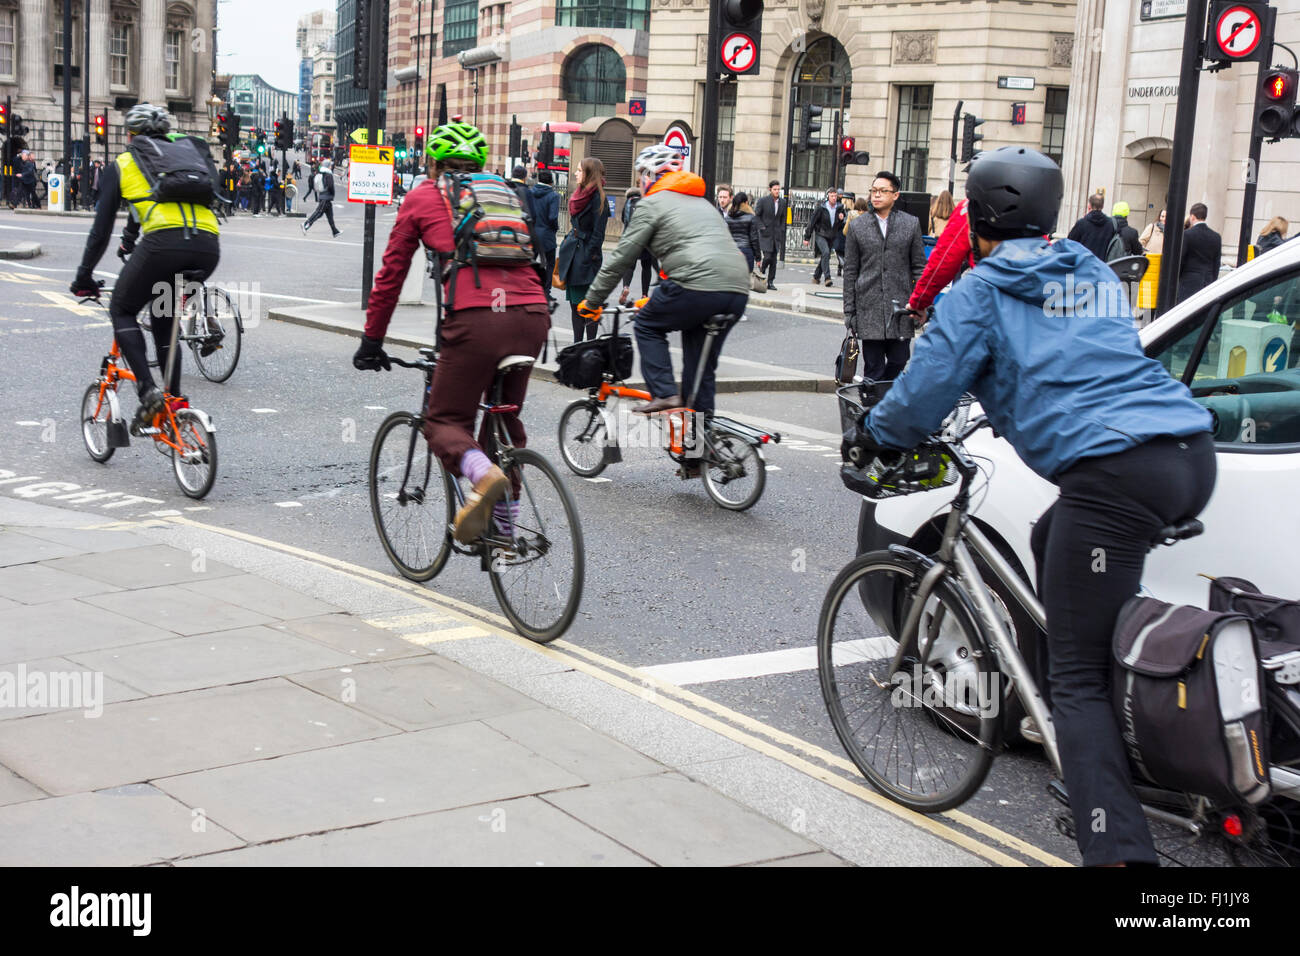 Cyclists setting off from traffic lights at Bank junction, London, UK - Stock Image